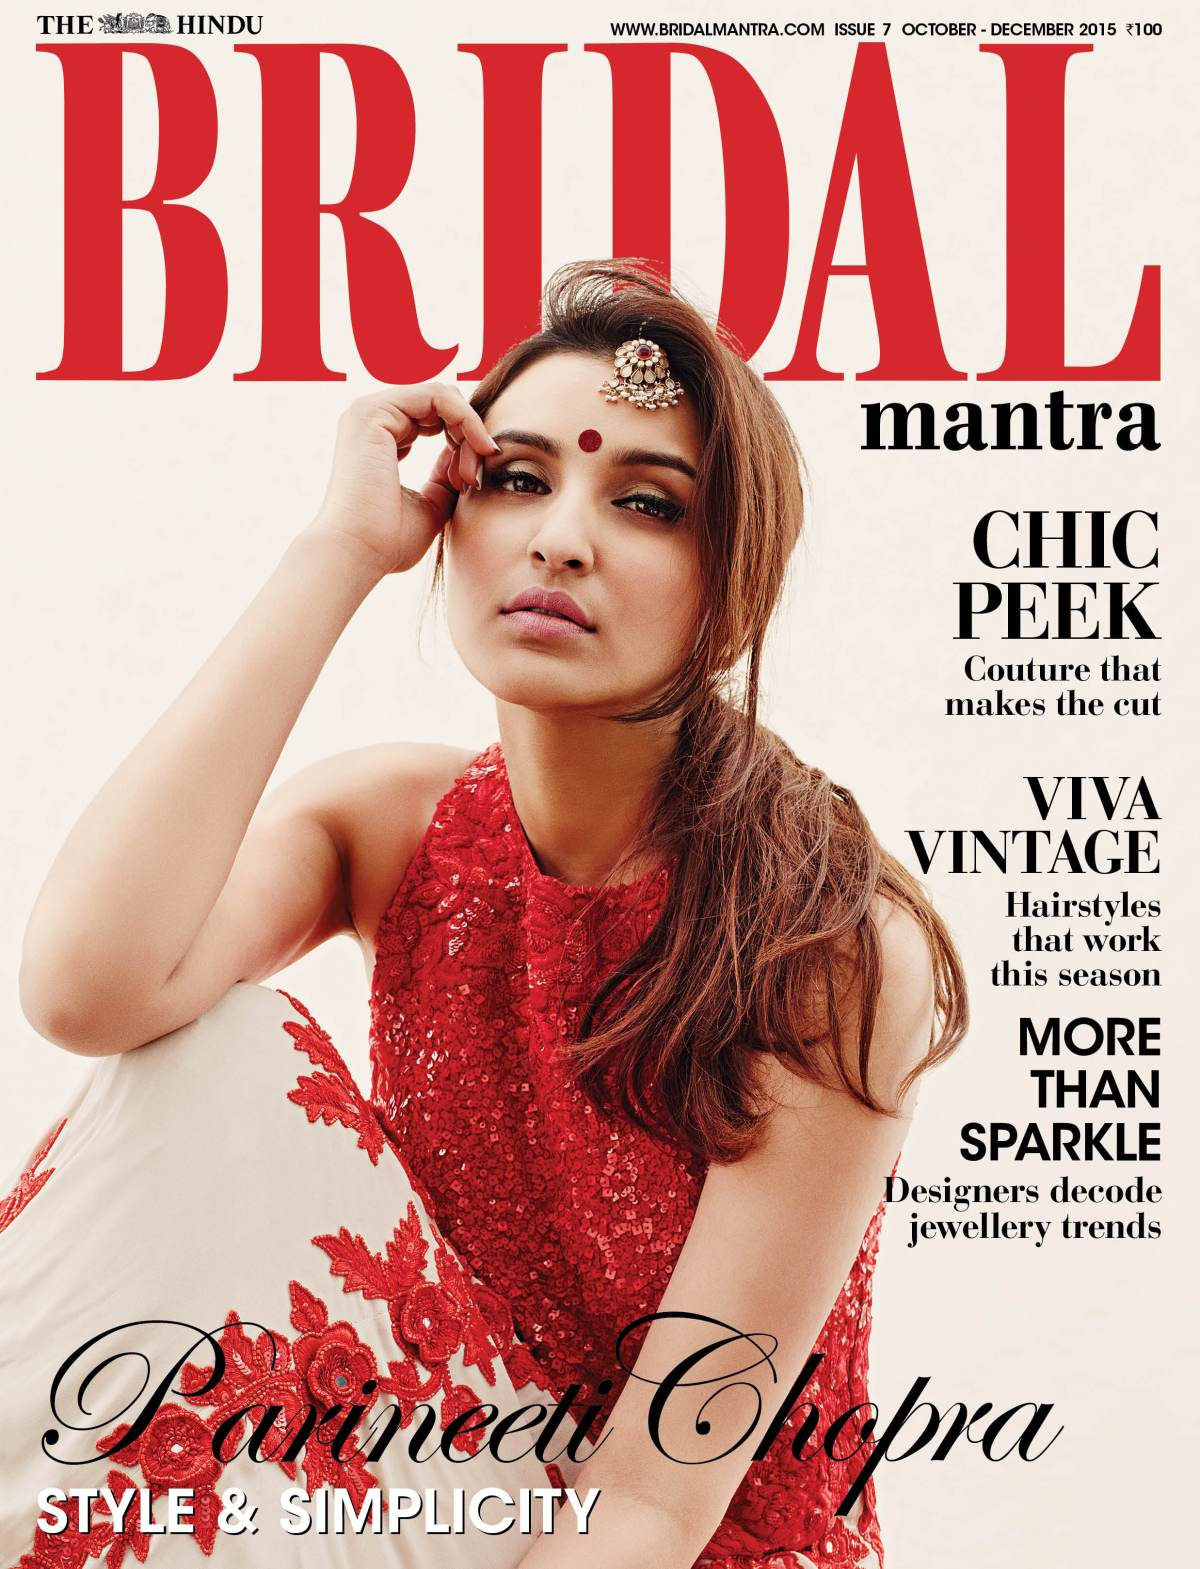 BRIDAL MANTRA OCT 2015 COVER